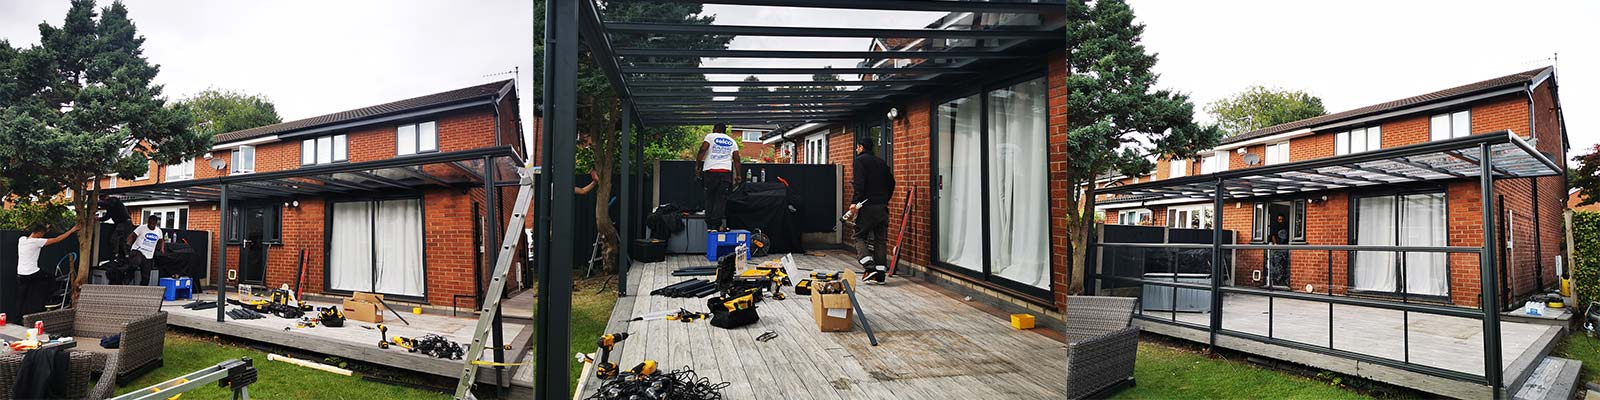 L-Type-PatioCover-Stockport-03